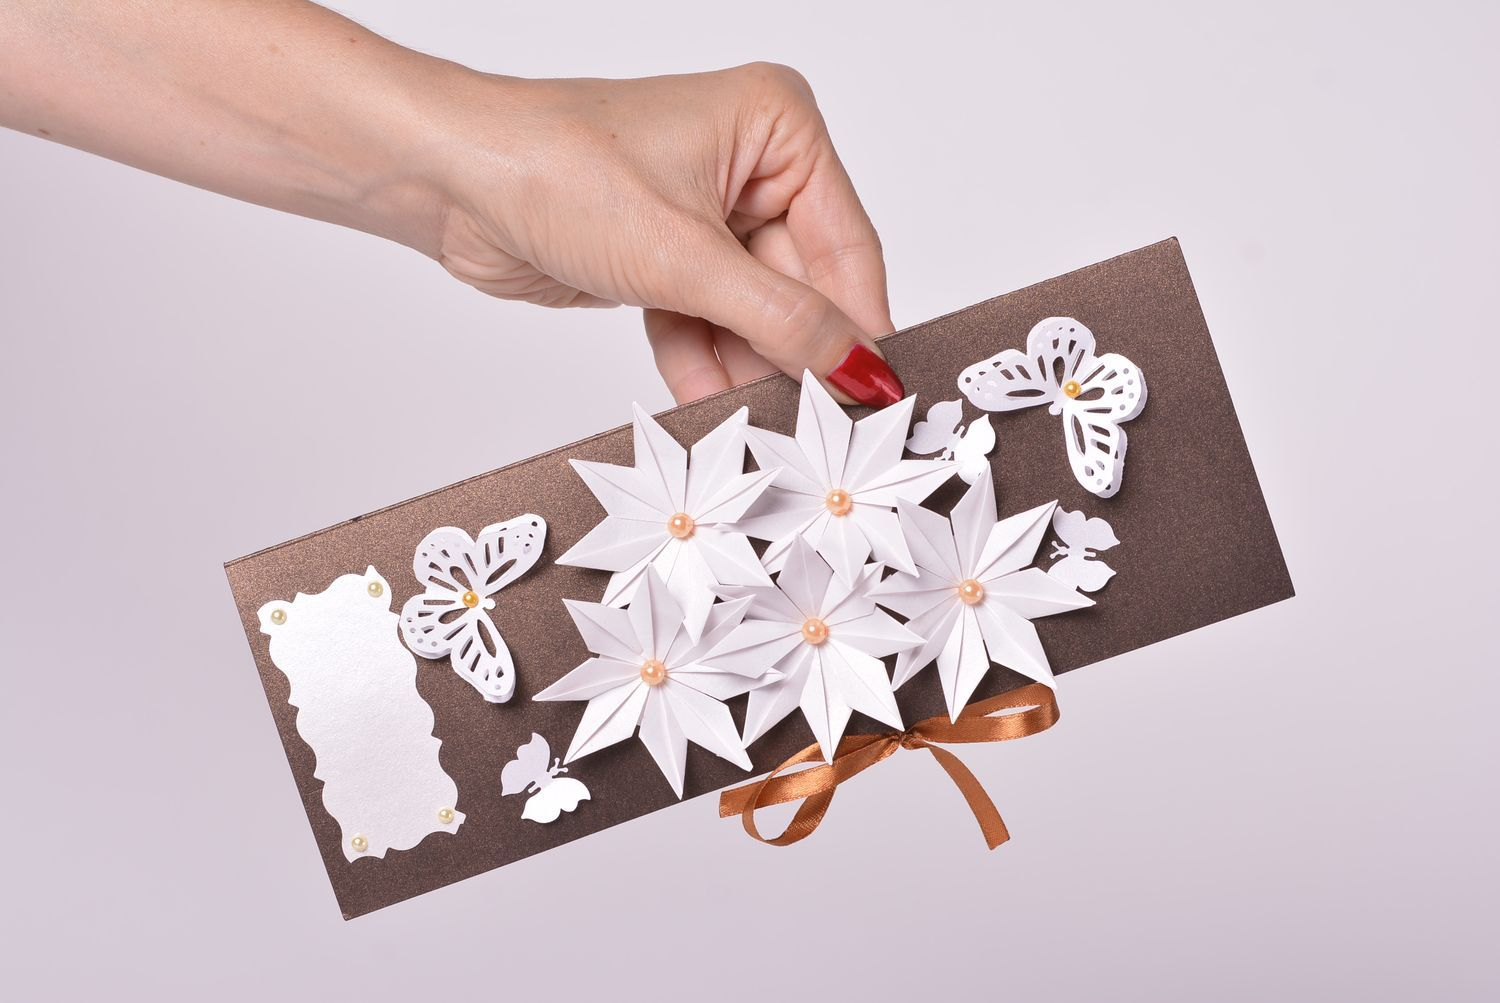 images of handmade greeting cards for birthday ; 056_2